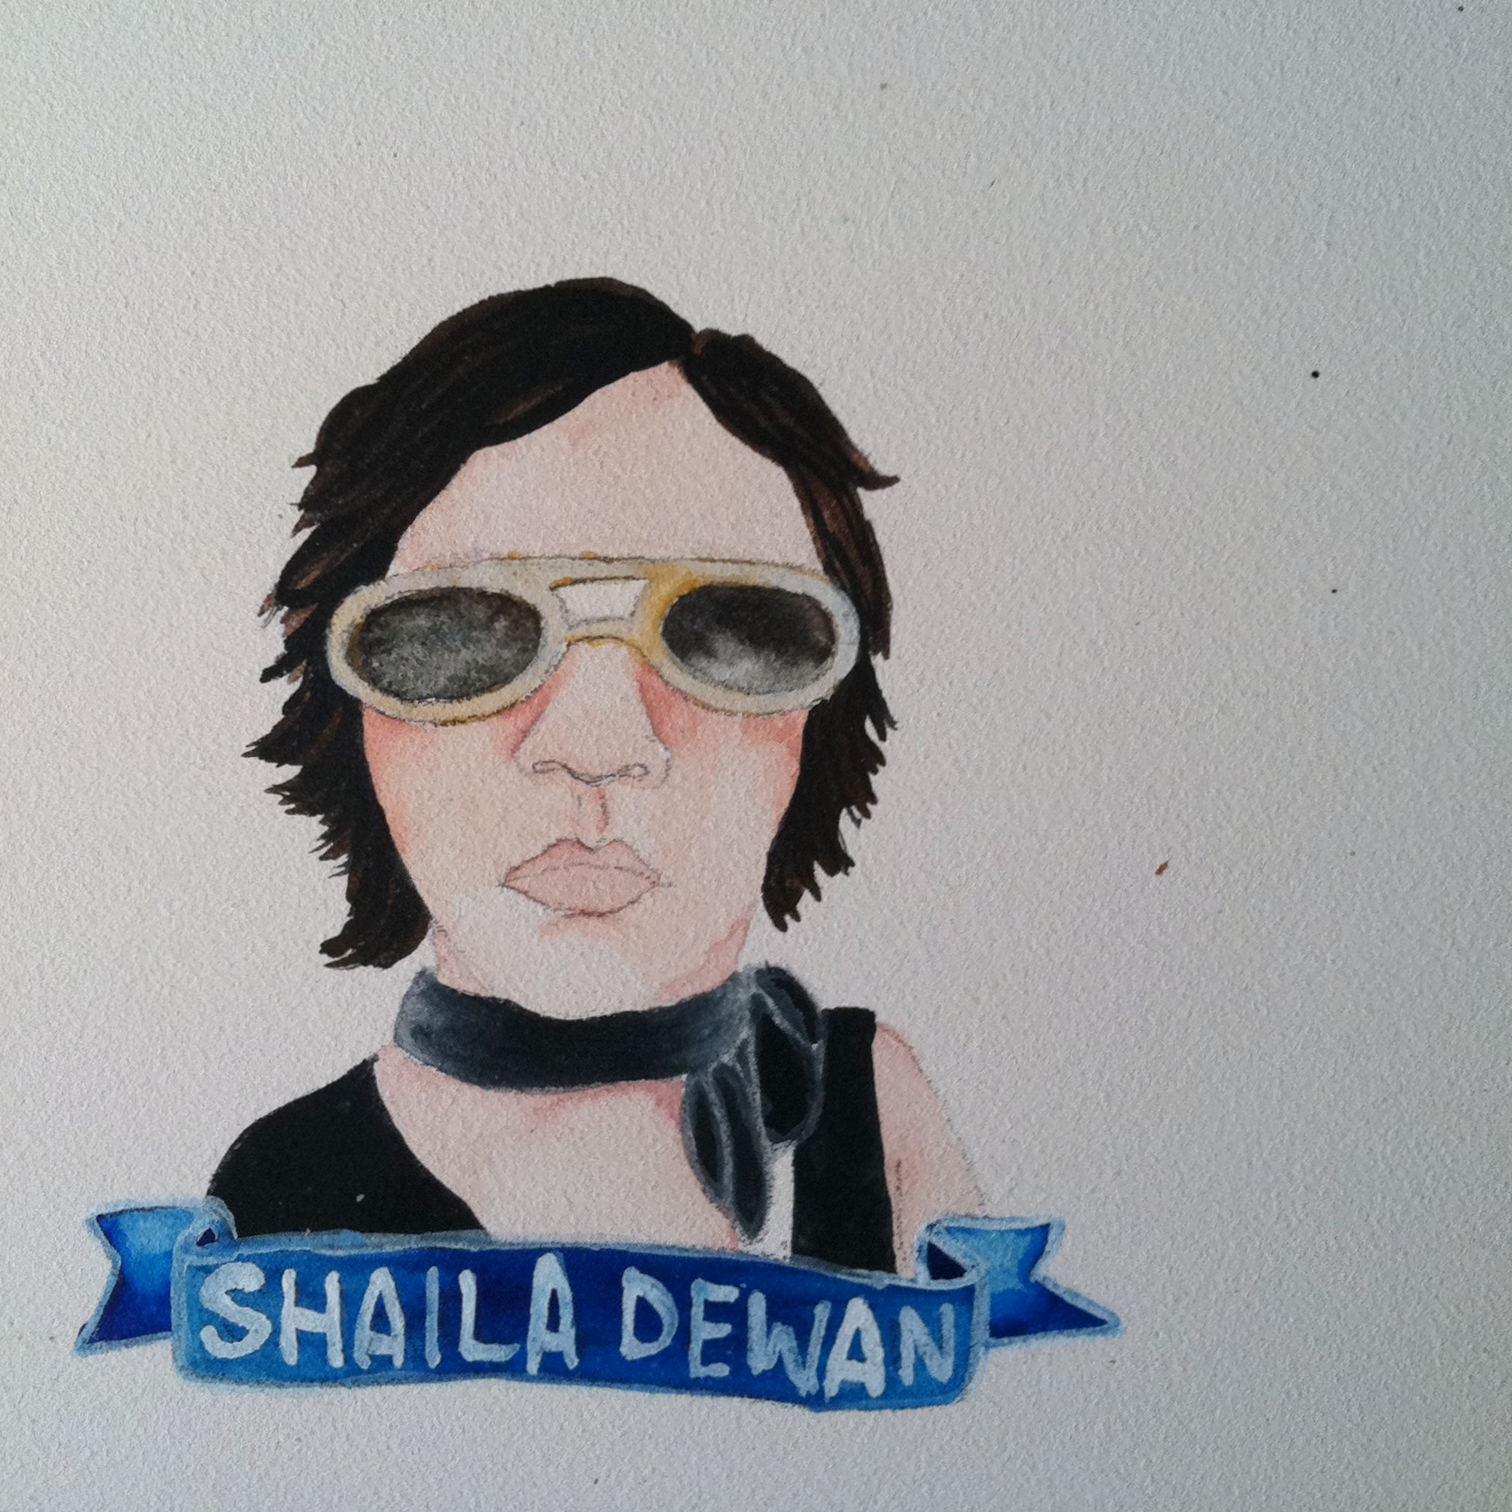 Talent Loves Company at Barbara Archer Gallery: 365 portraits by Lydia Walls - Shaila Dewan